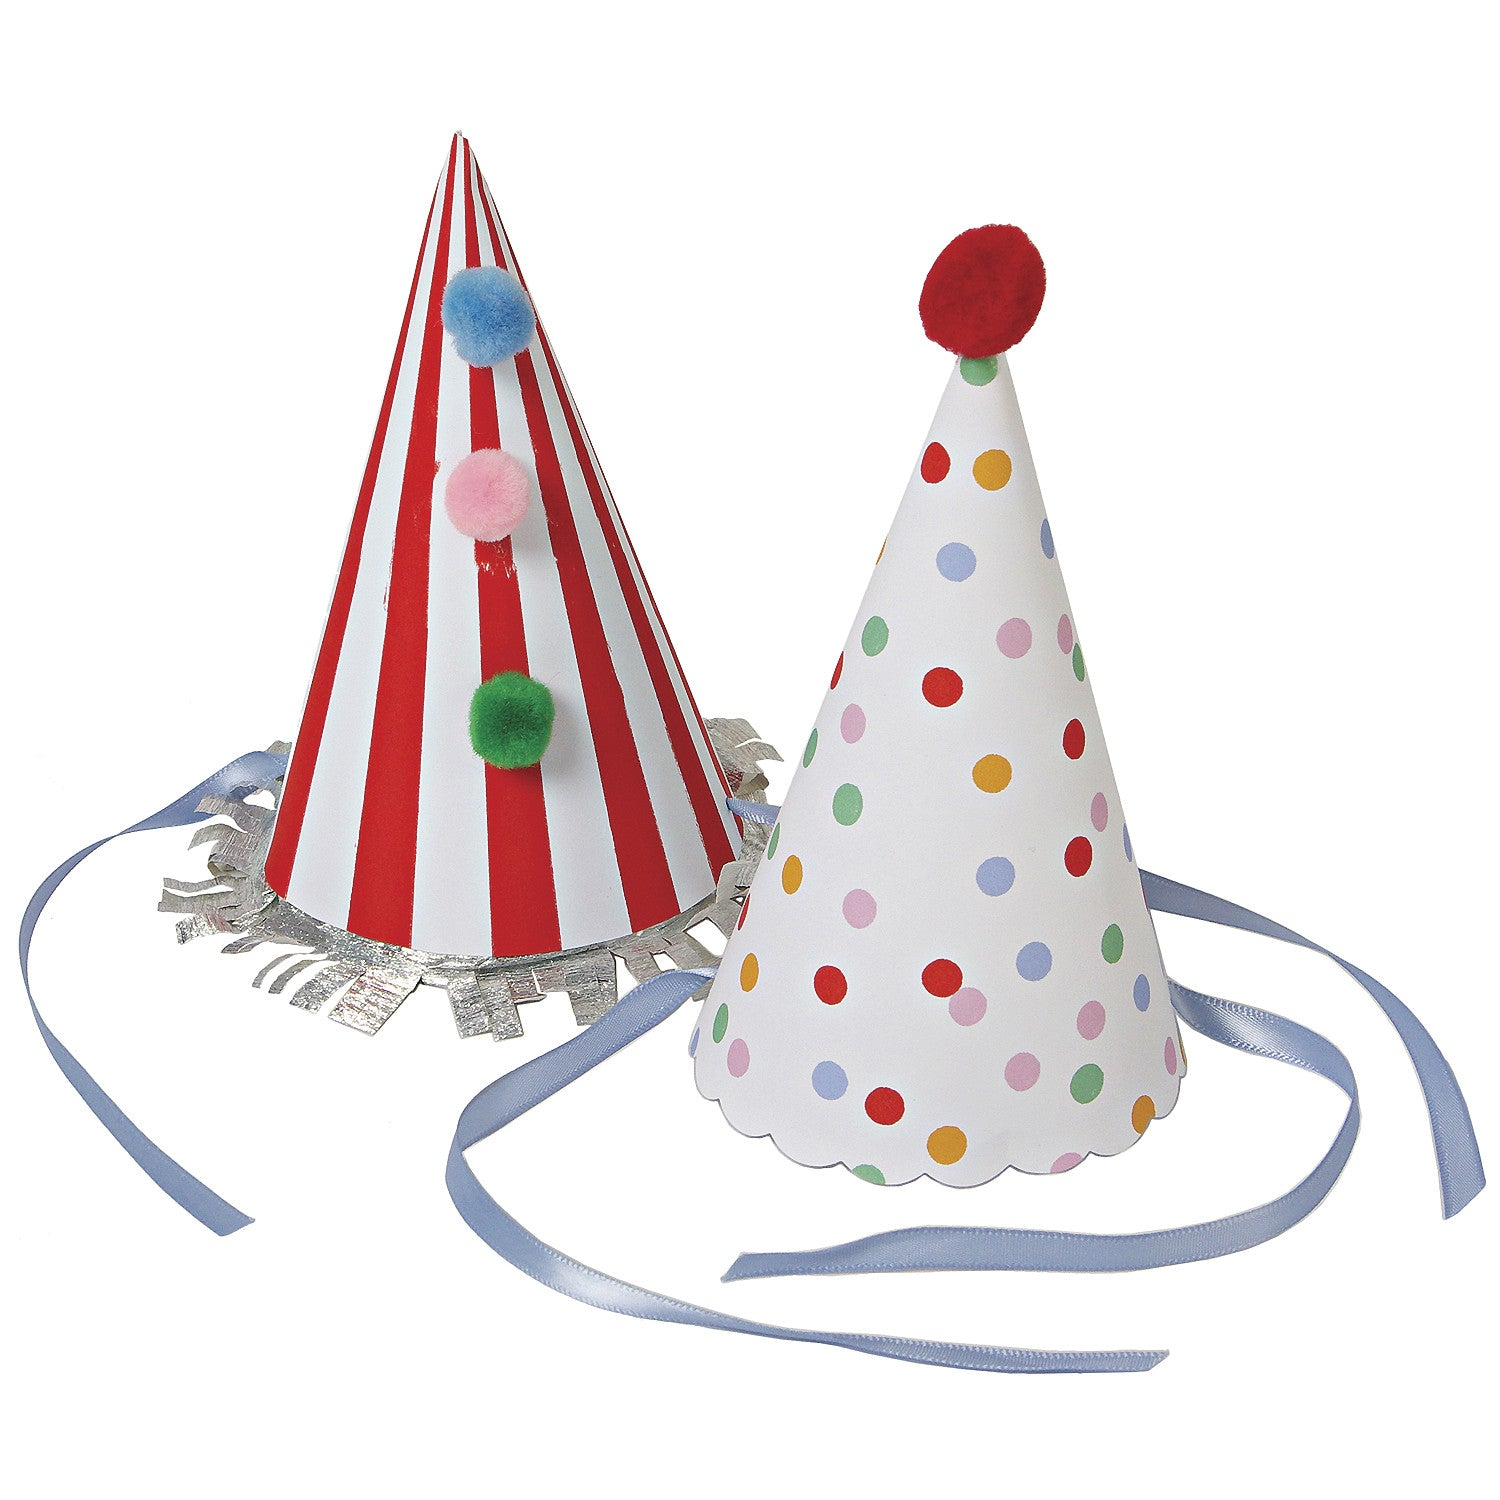 Toot Sweet - set of 8 Party Hats by Meri Meri - Little Citizens Boutique  - 1